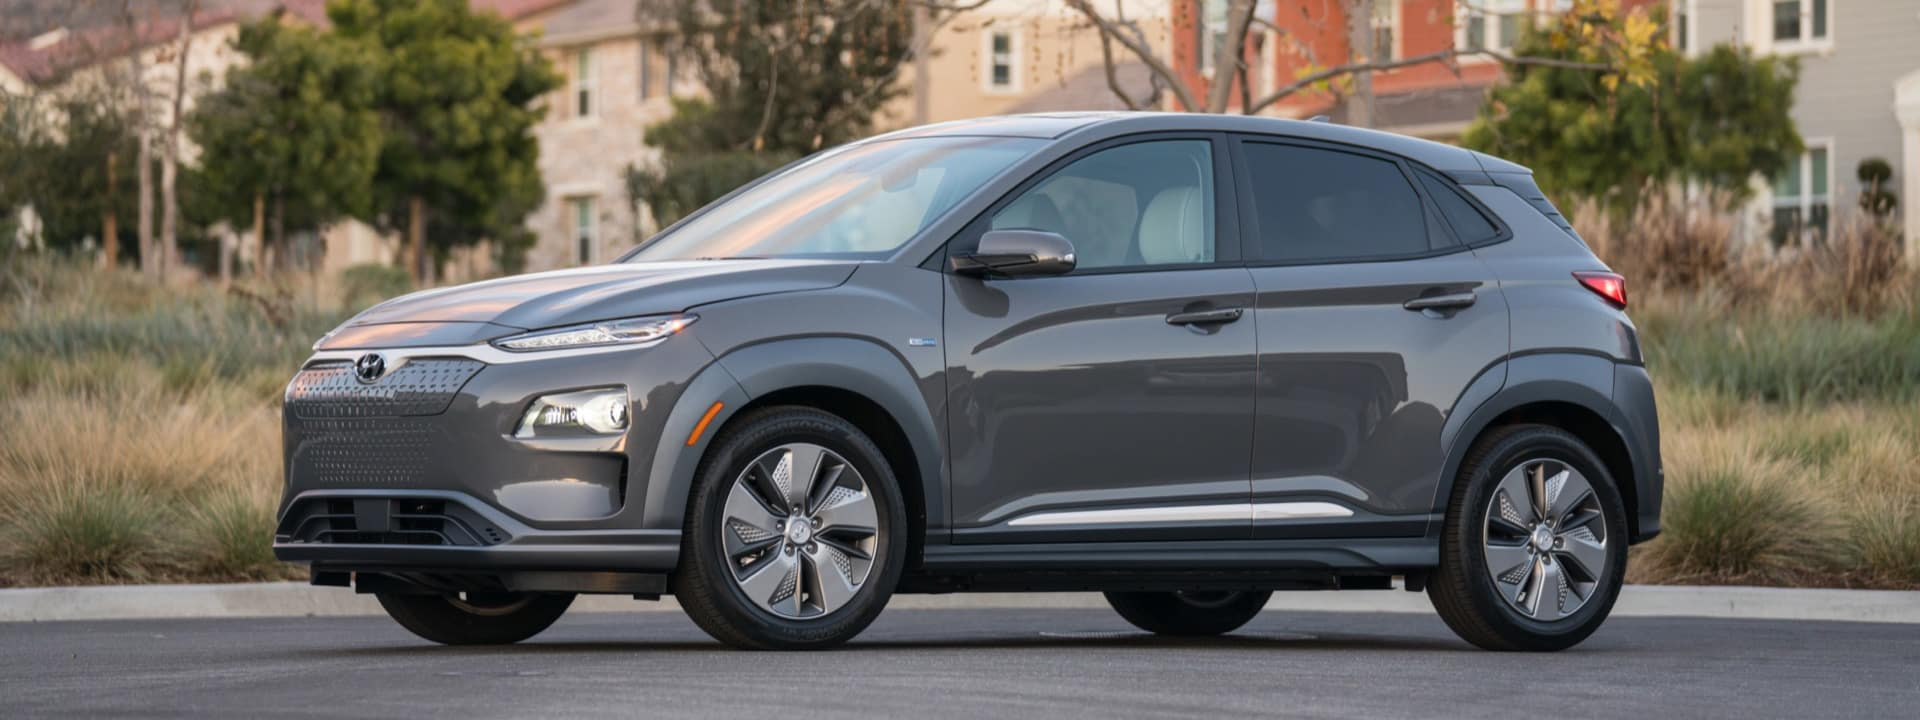 2021 Hyundai Kona EV for sales